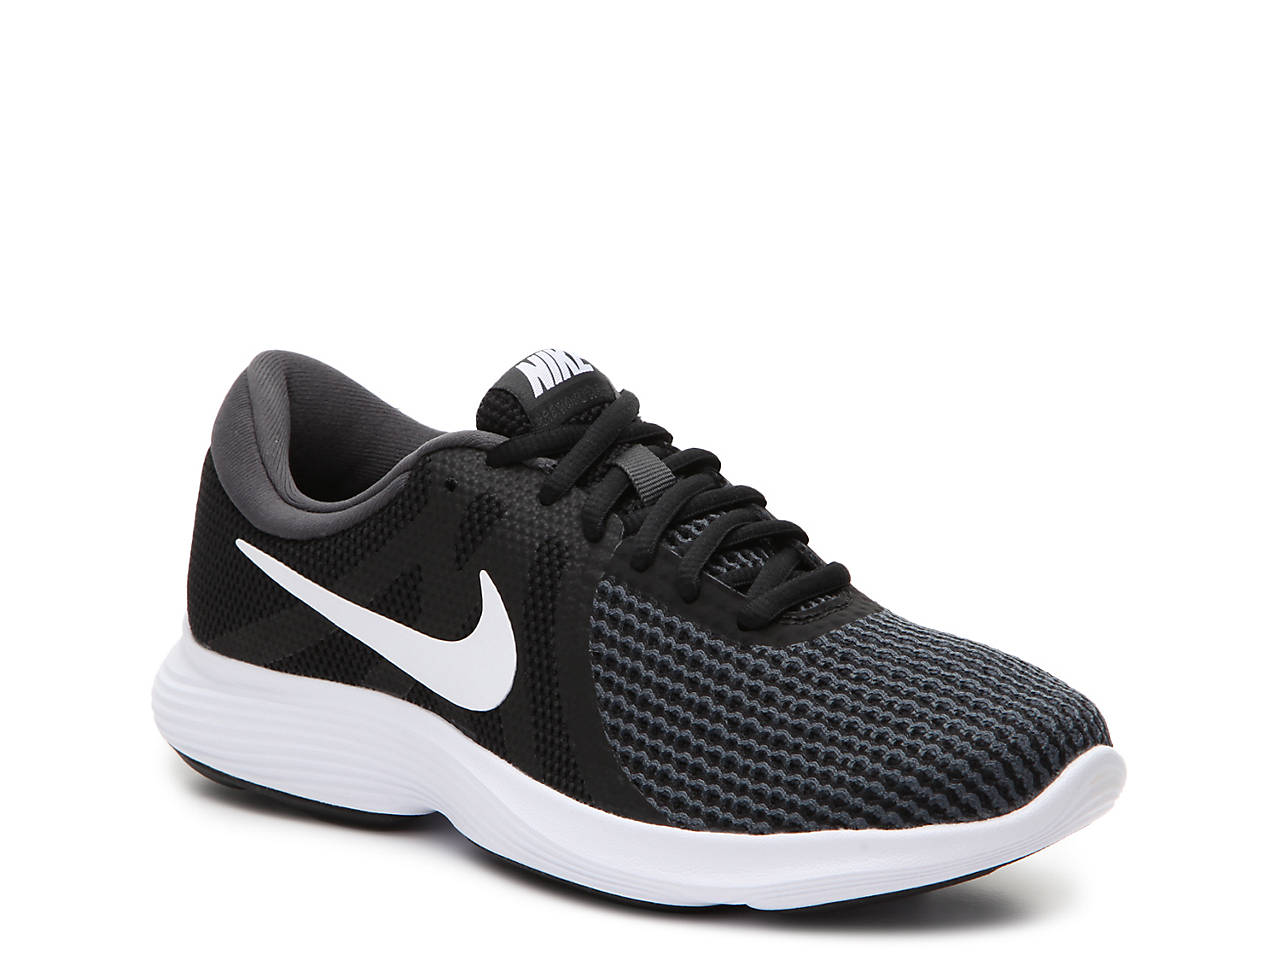 e17e8480a96a87 Nike Revolution 4 Lightweight Running Shoe - Women s Women s Shoes